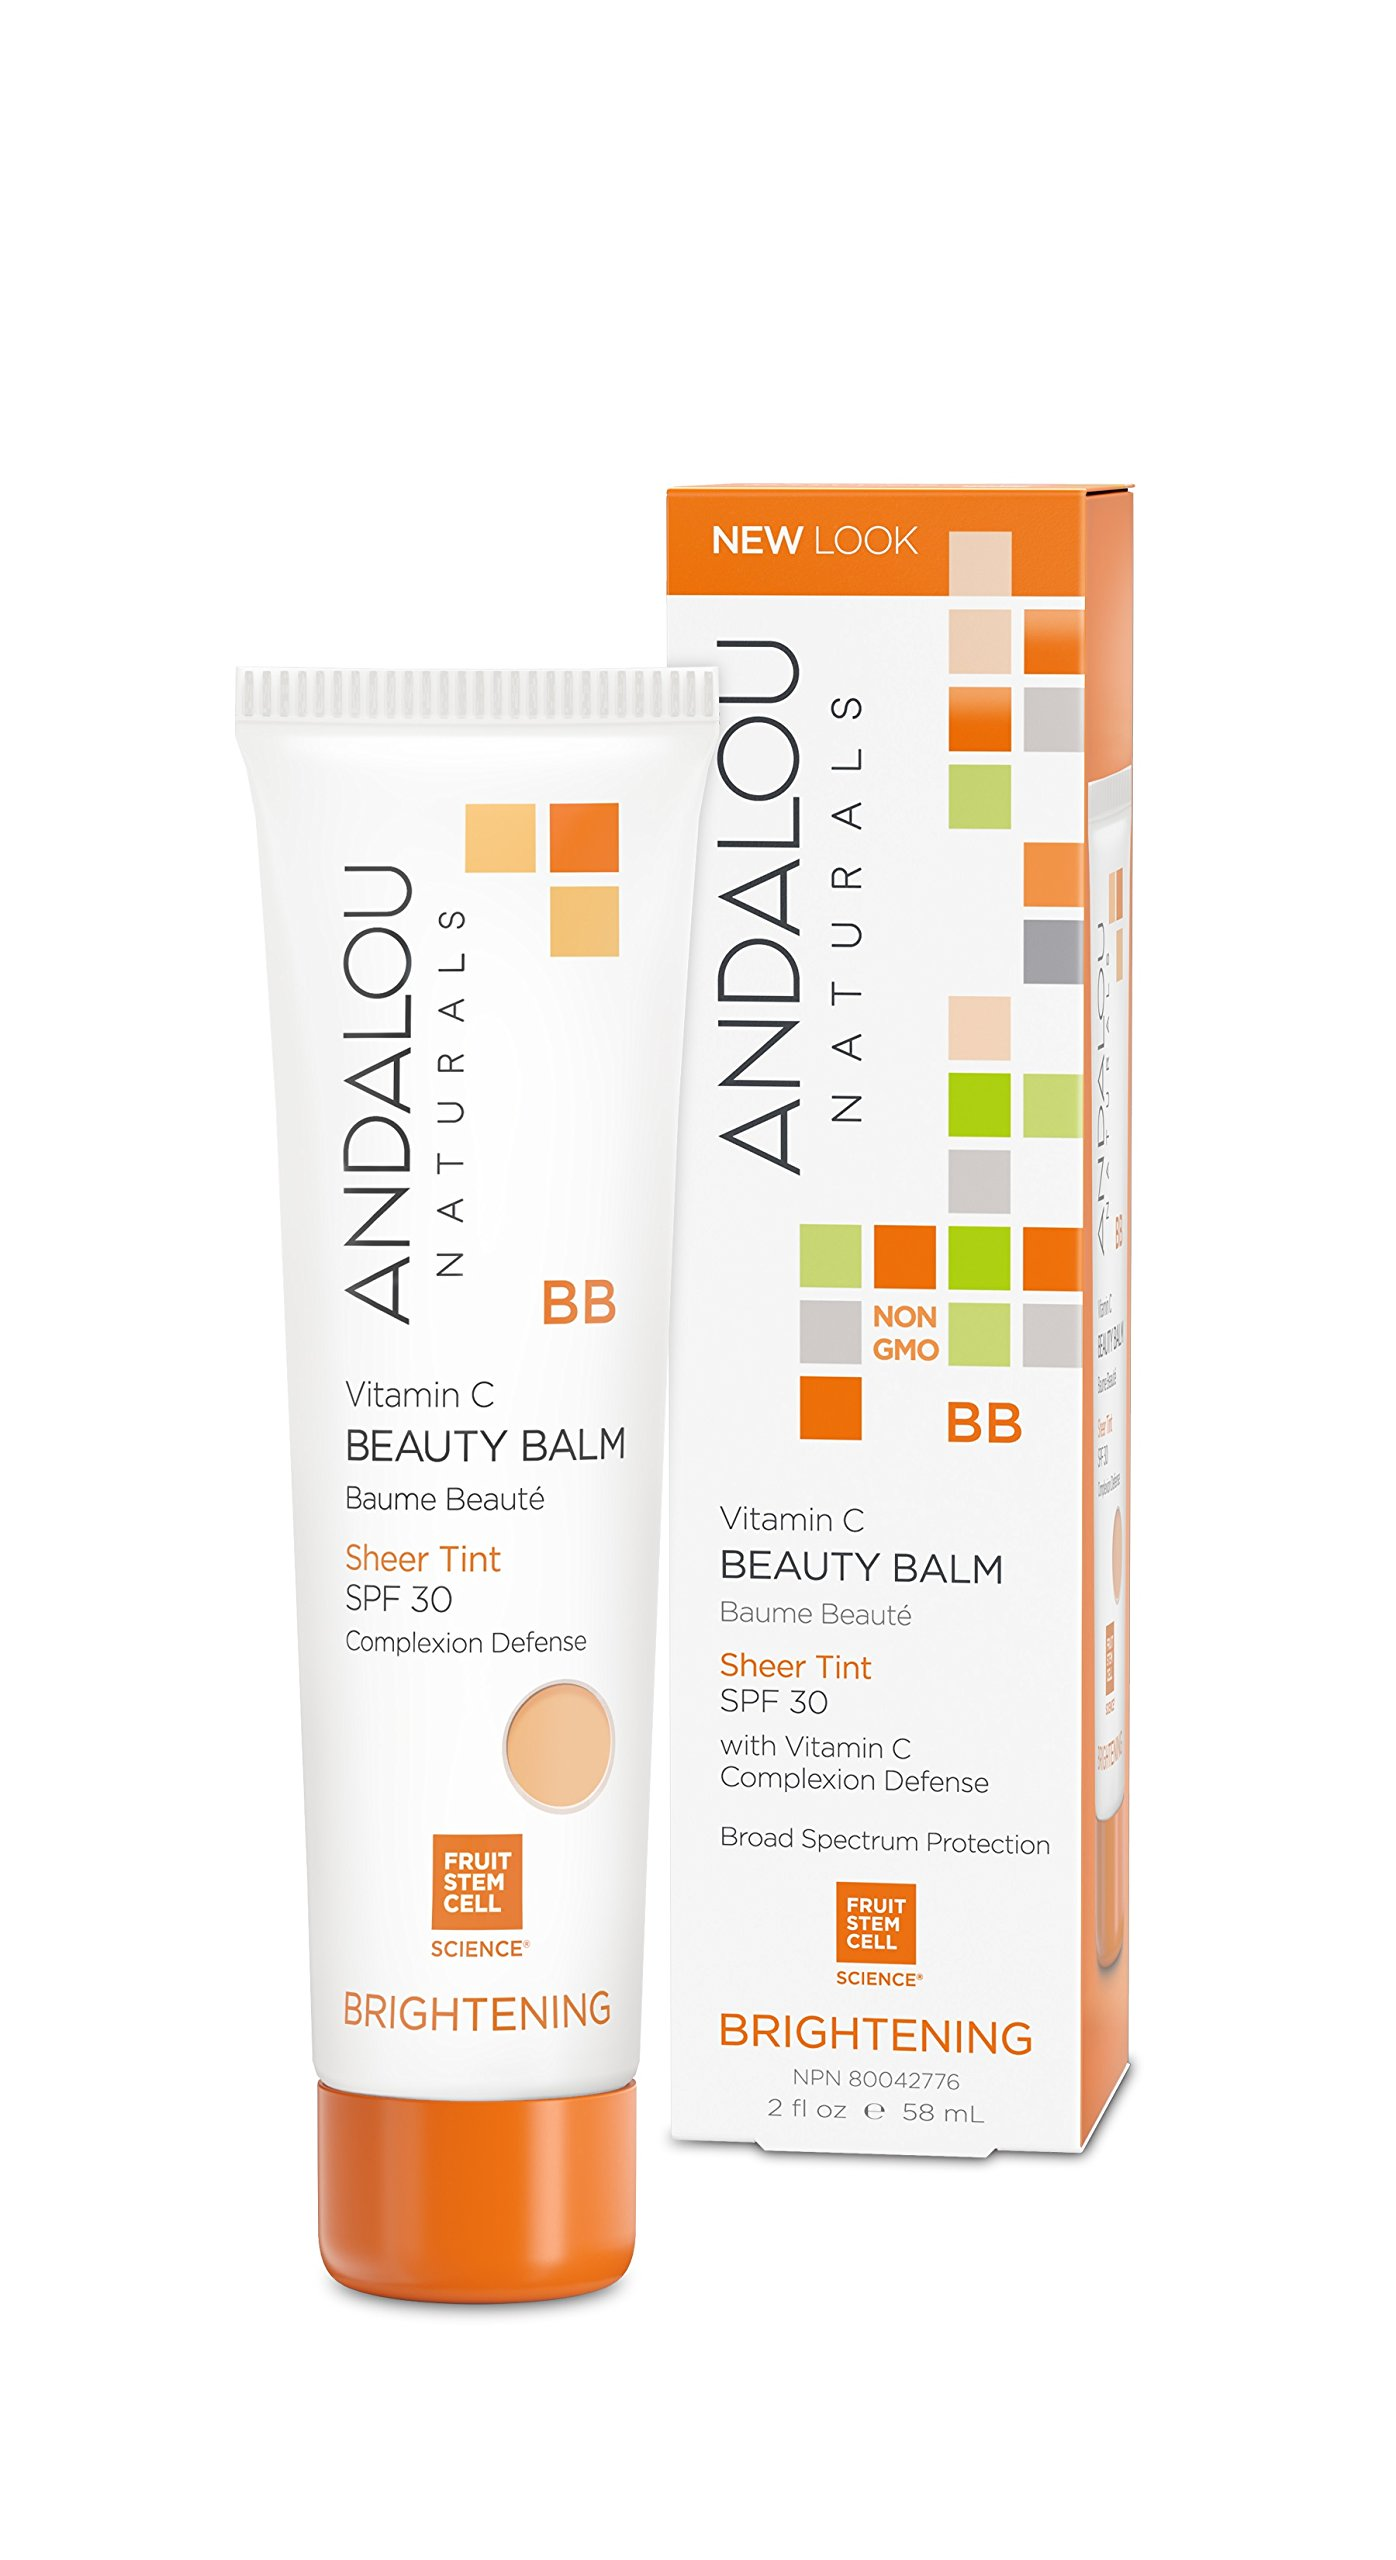 Andalou Naturals Vitamin C BB Beauty Balm, Sheer Tint, SPF 30, 2 oz, Protects, Brightens with Vitamin C, Evens Skin Tone